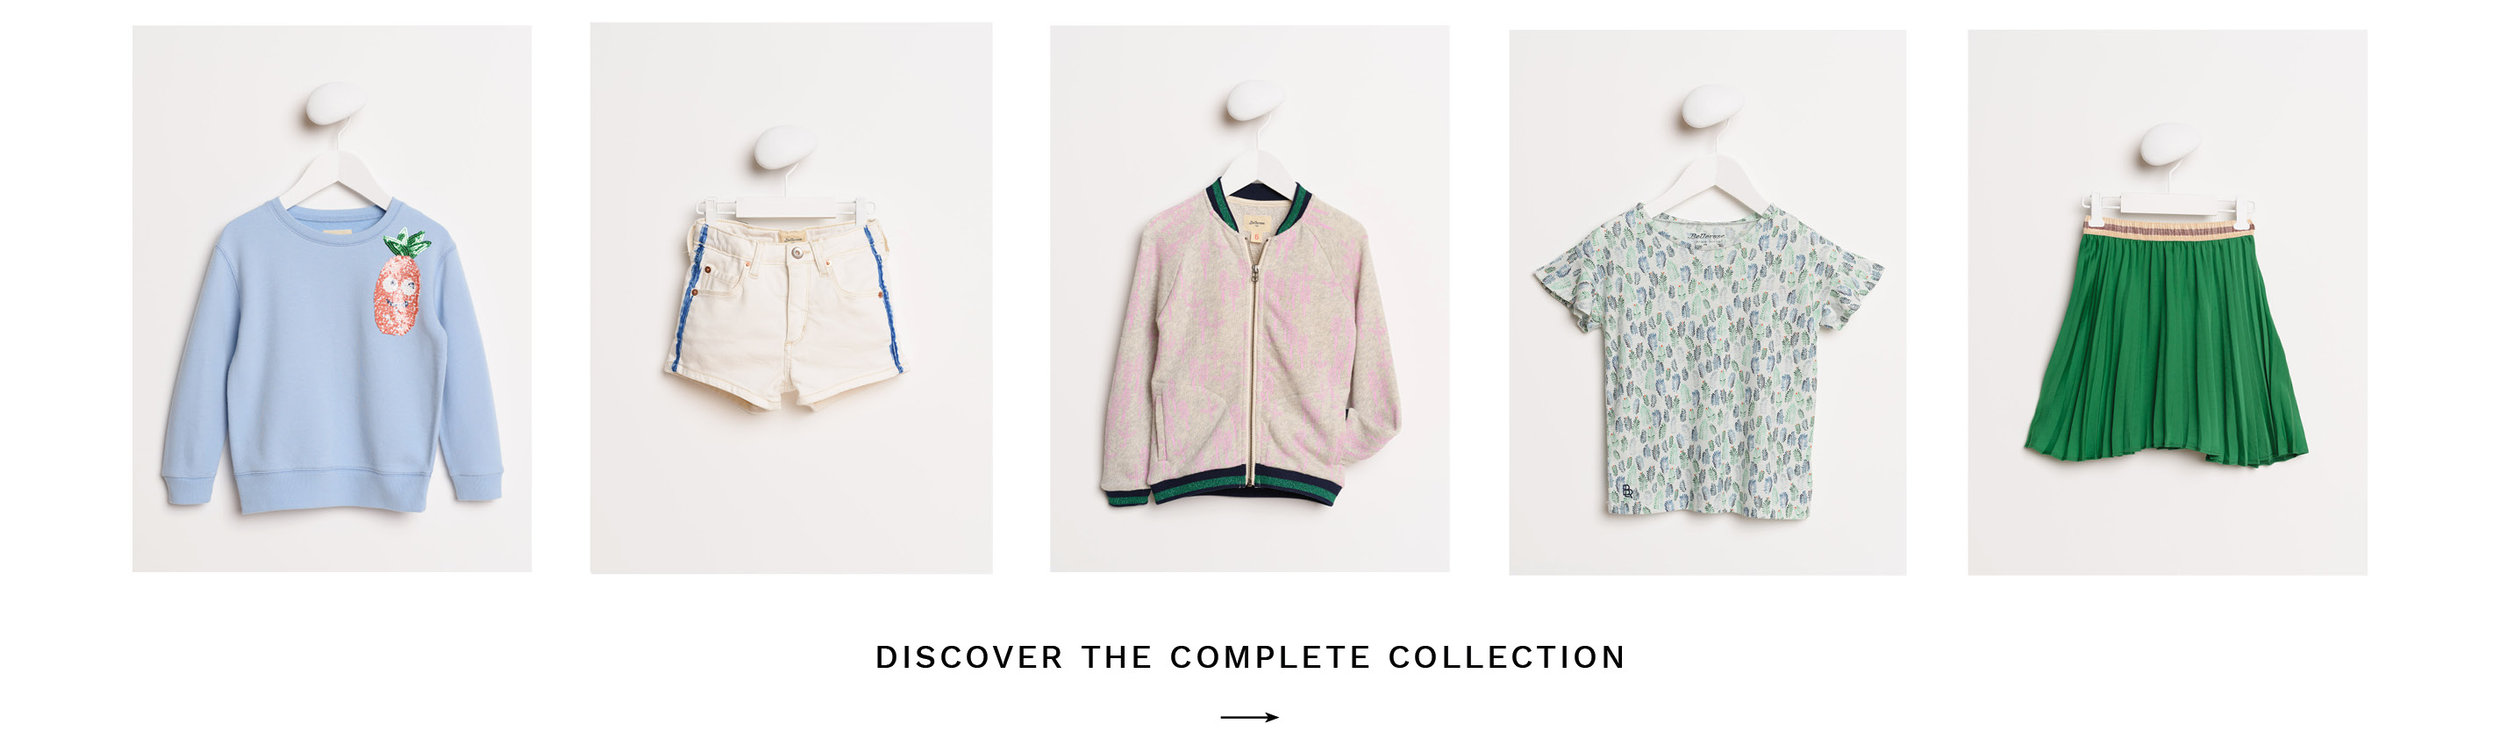 discover the collection4.jpg